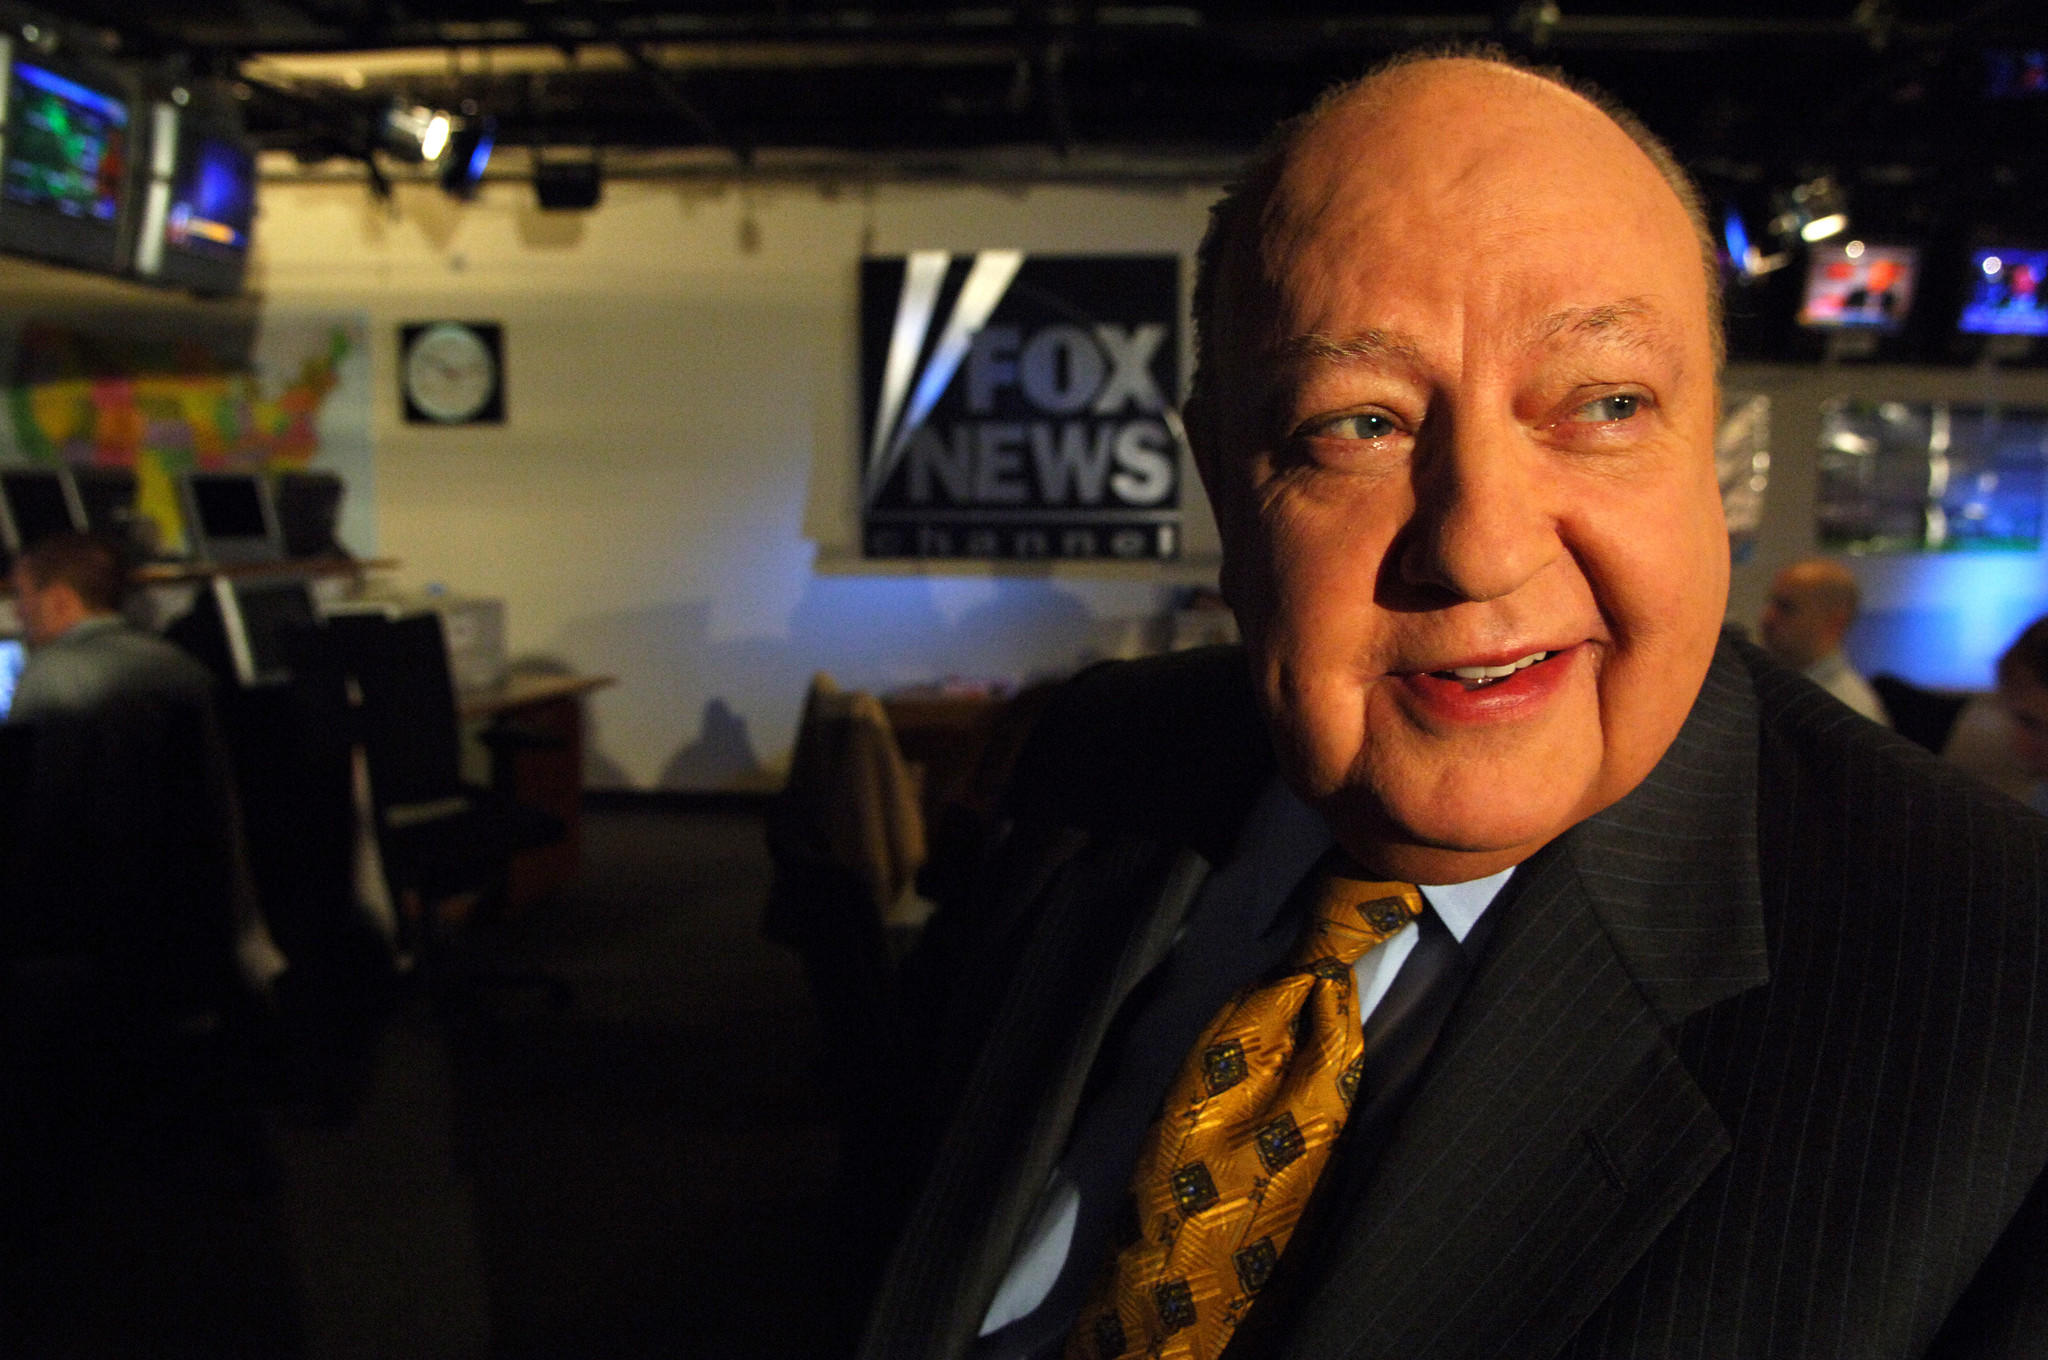 Roger Ailes in 2006 (Jennifer S. Altman / For The Times)